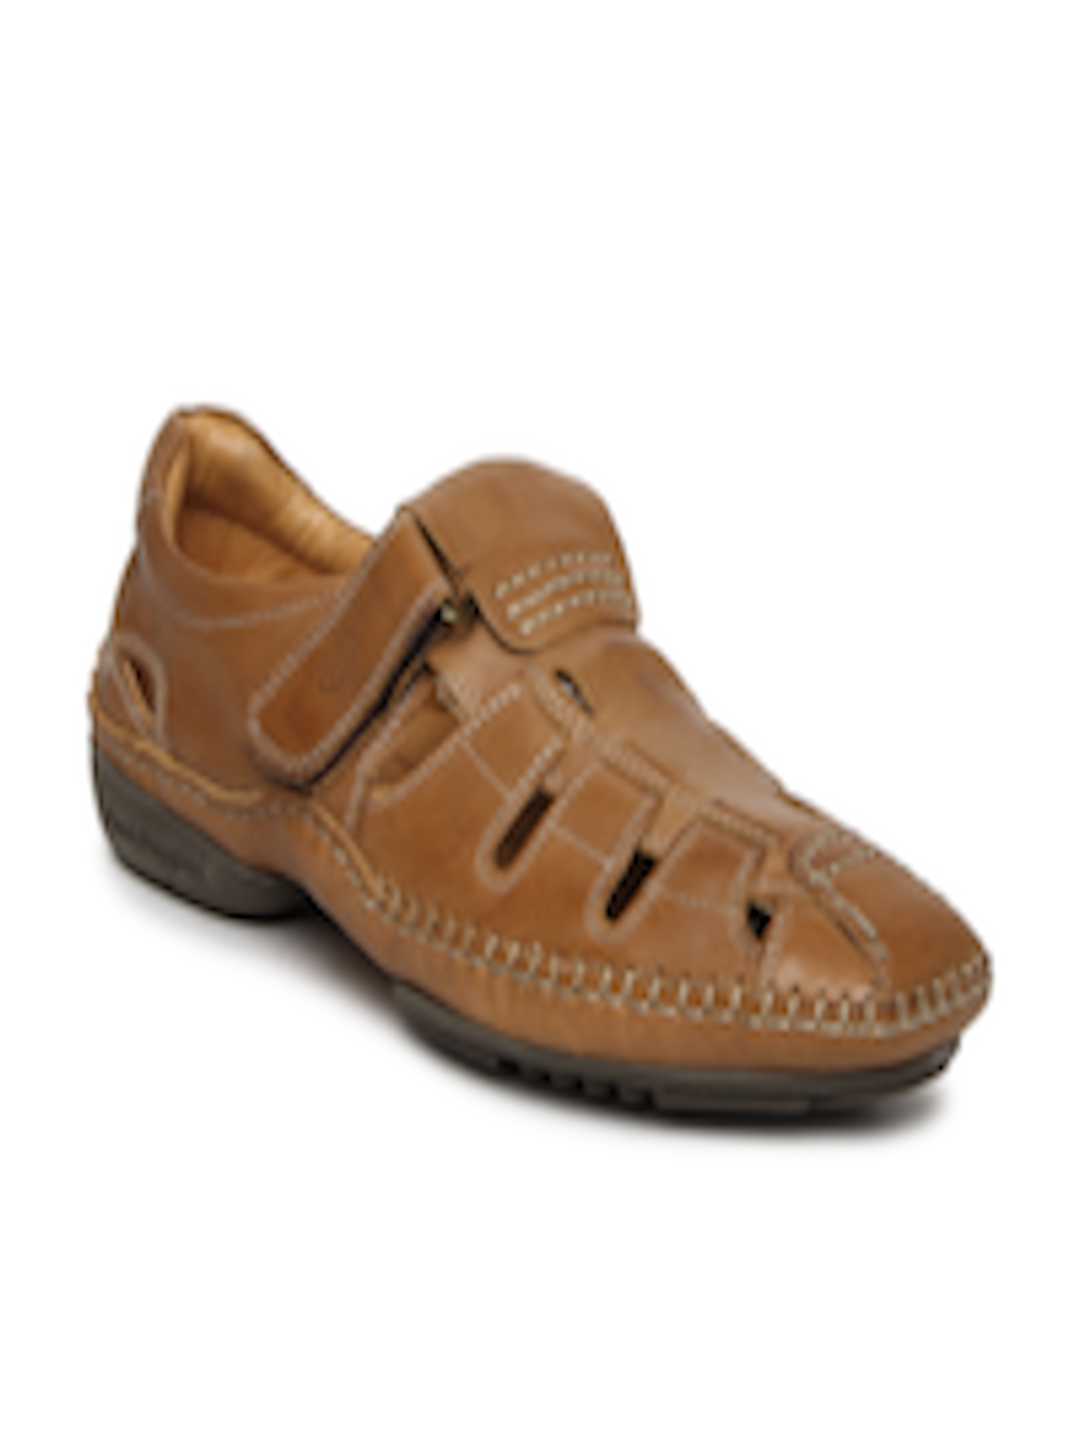 Buy Hush Puppies Men Brown Leather Casual Shoes Casual